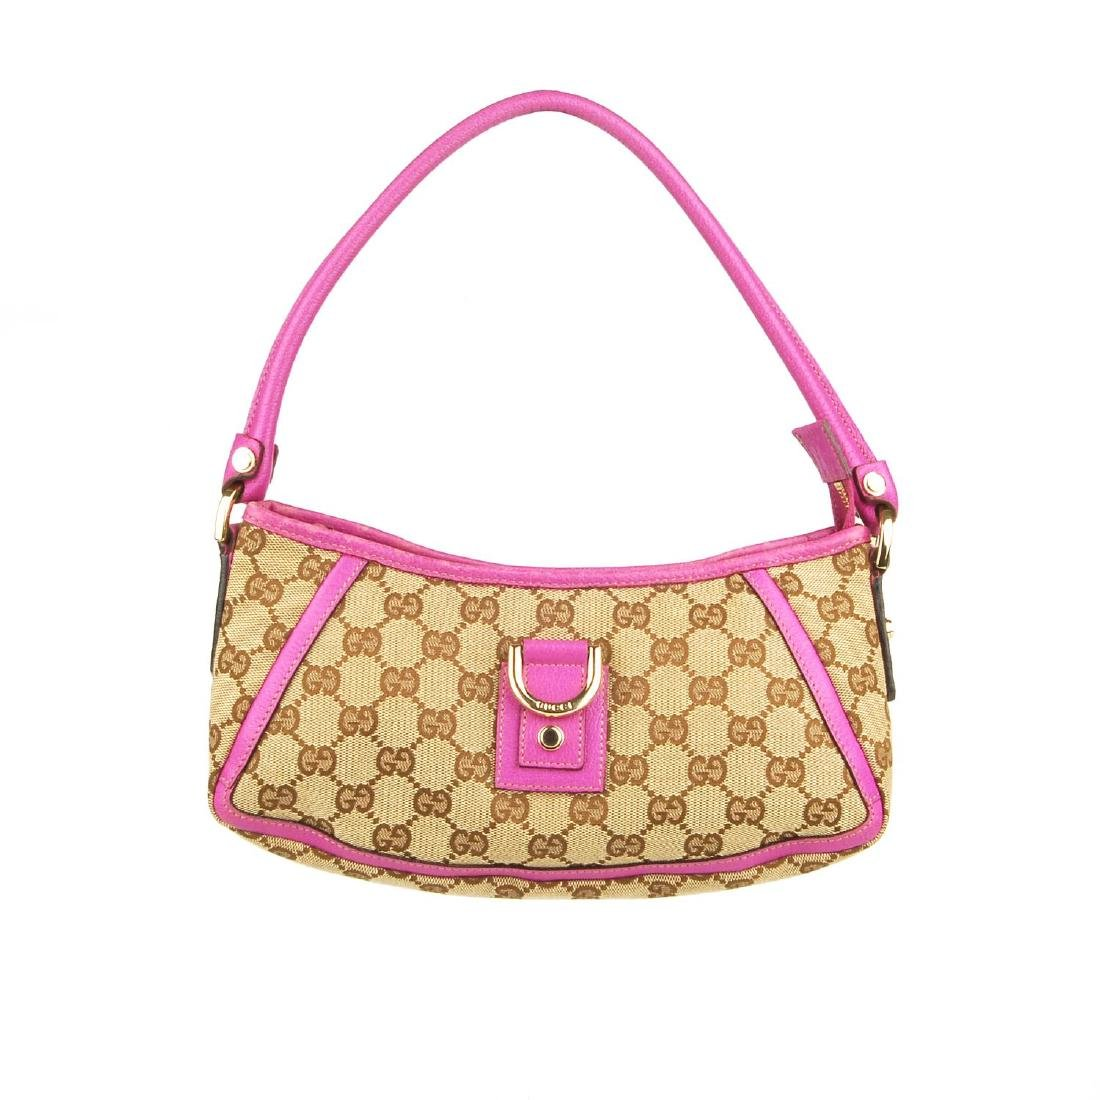 GUCCI - an Abbey handbag. Designed with maker's classic